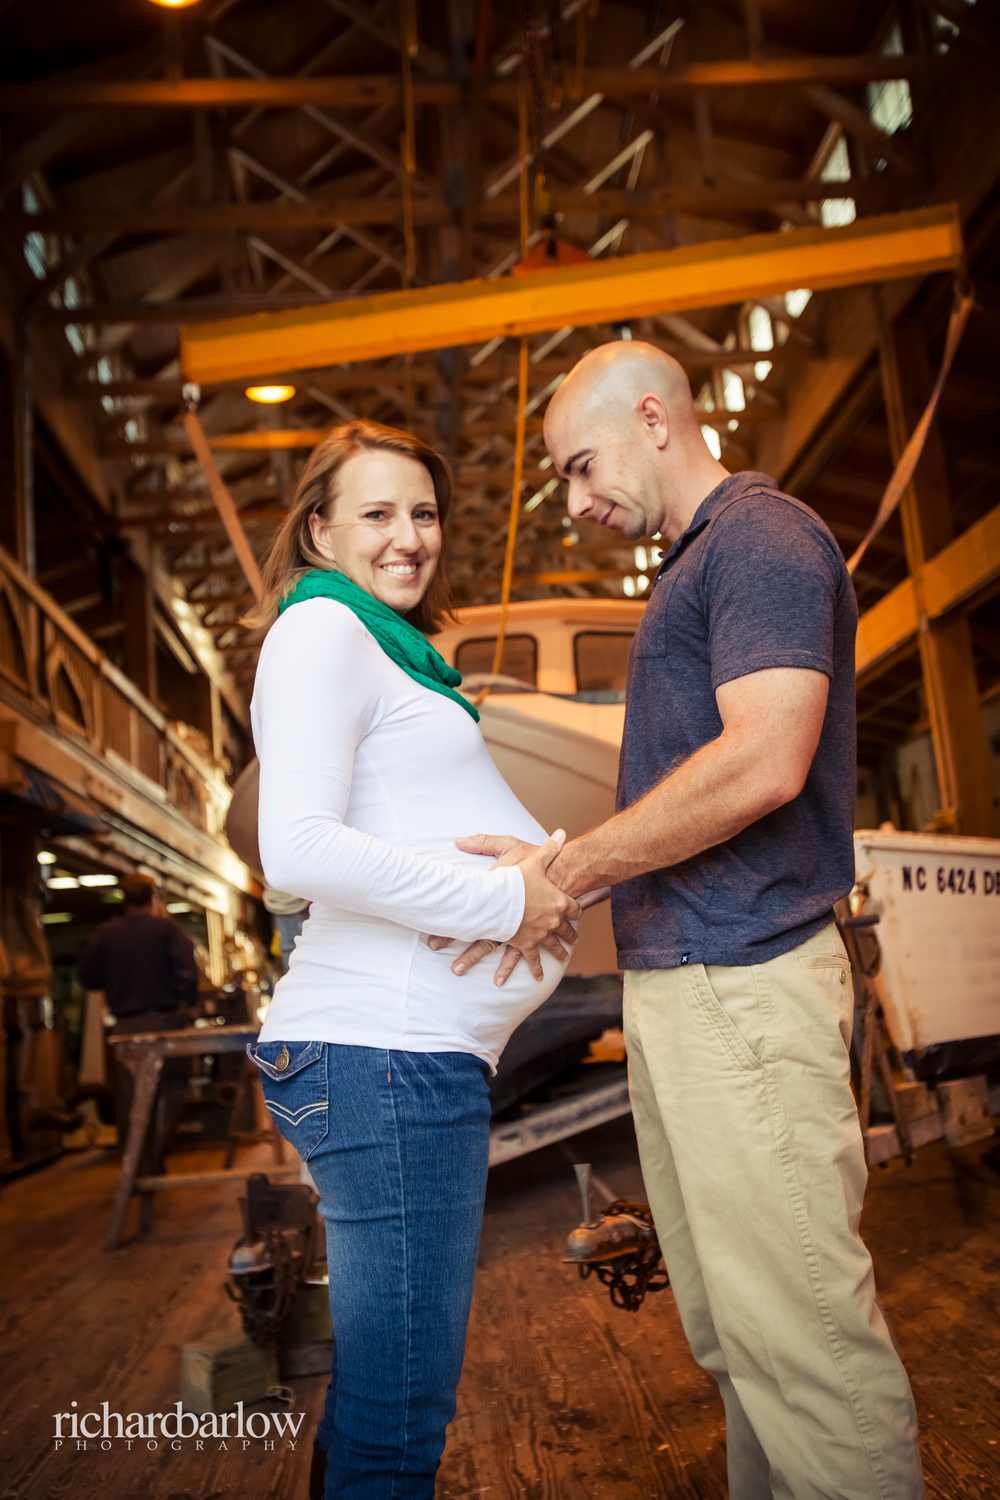 richard barlow photography - Sarah Maternity Session - Beaufort waterfront-11.jpg